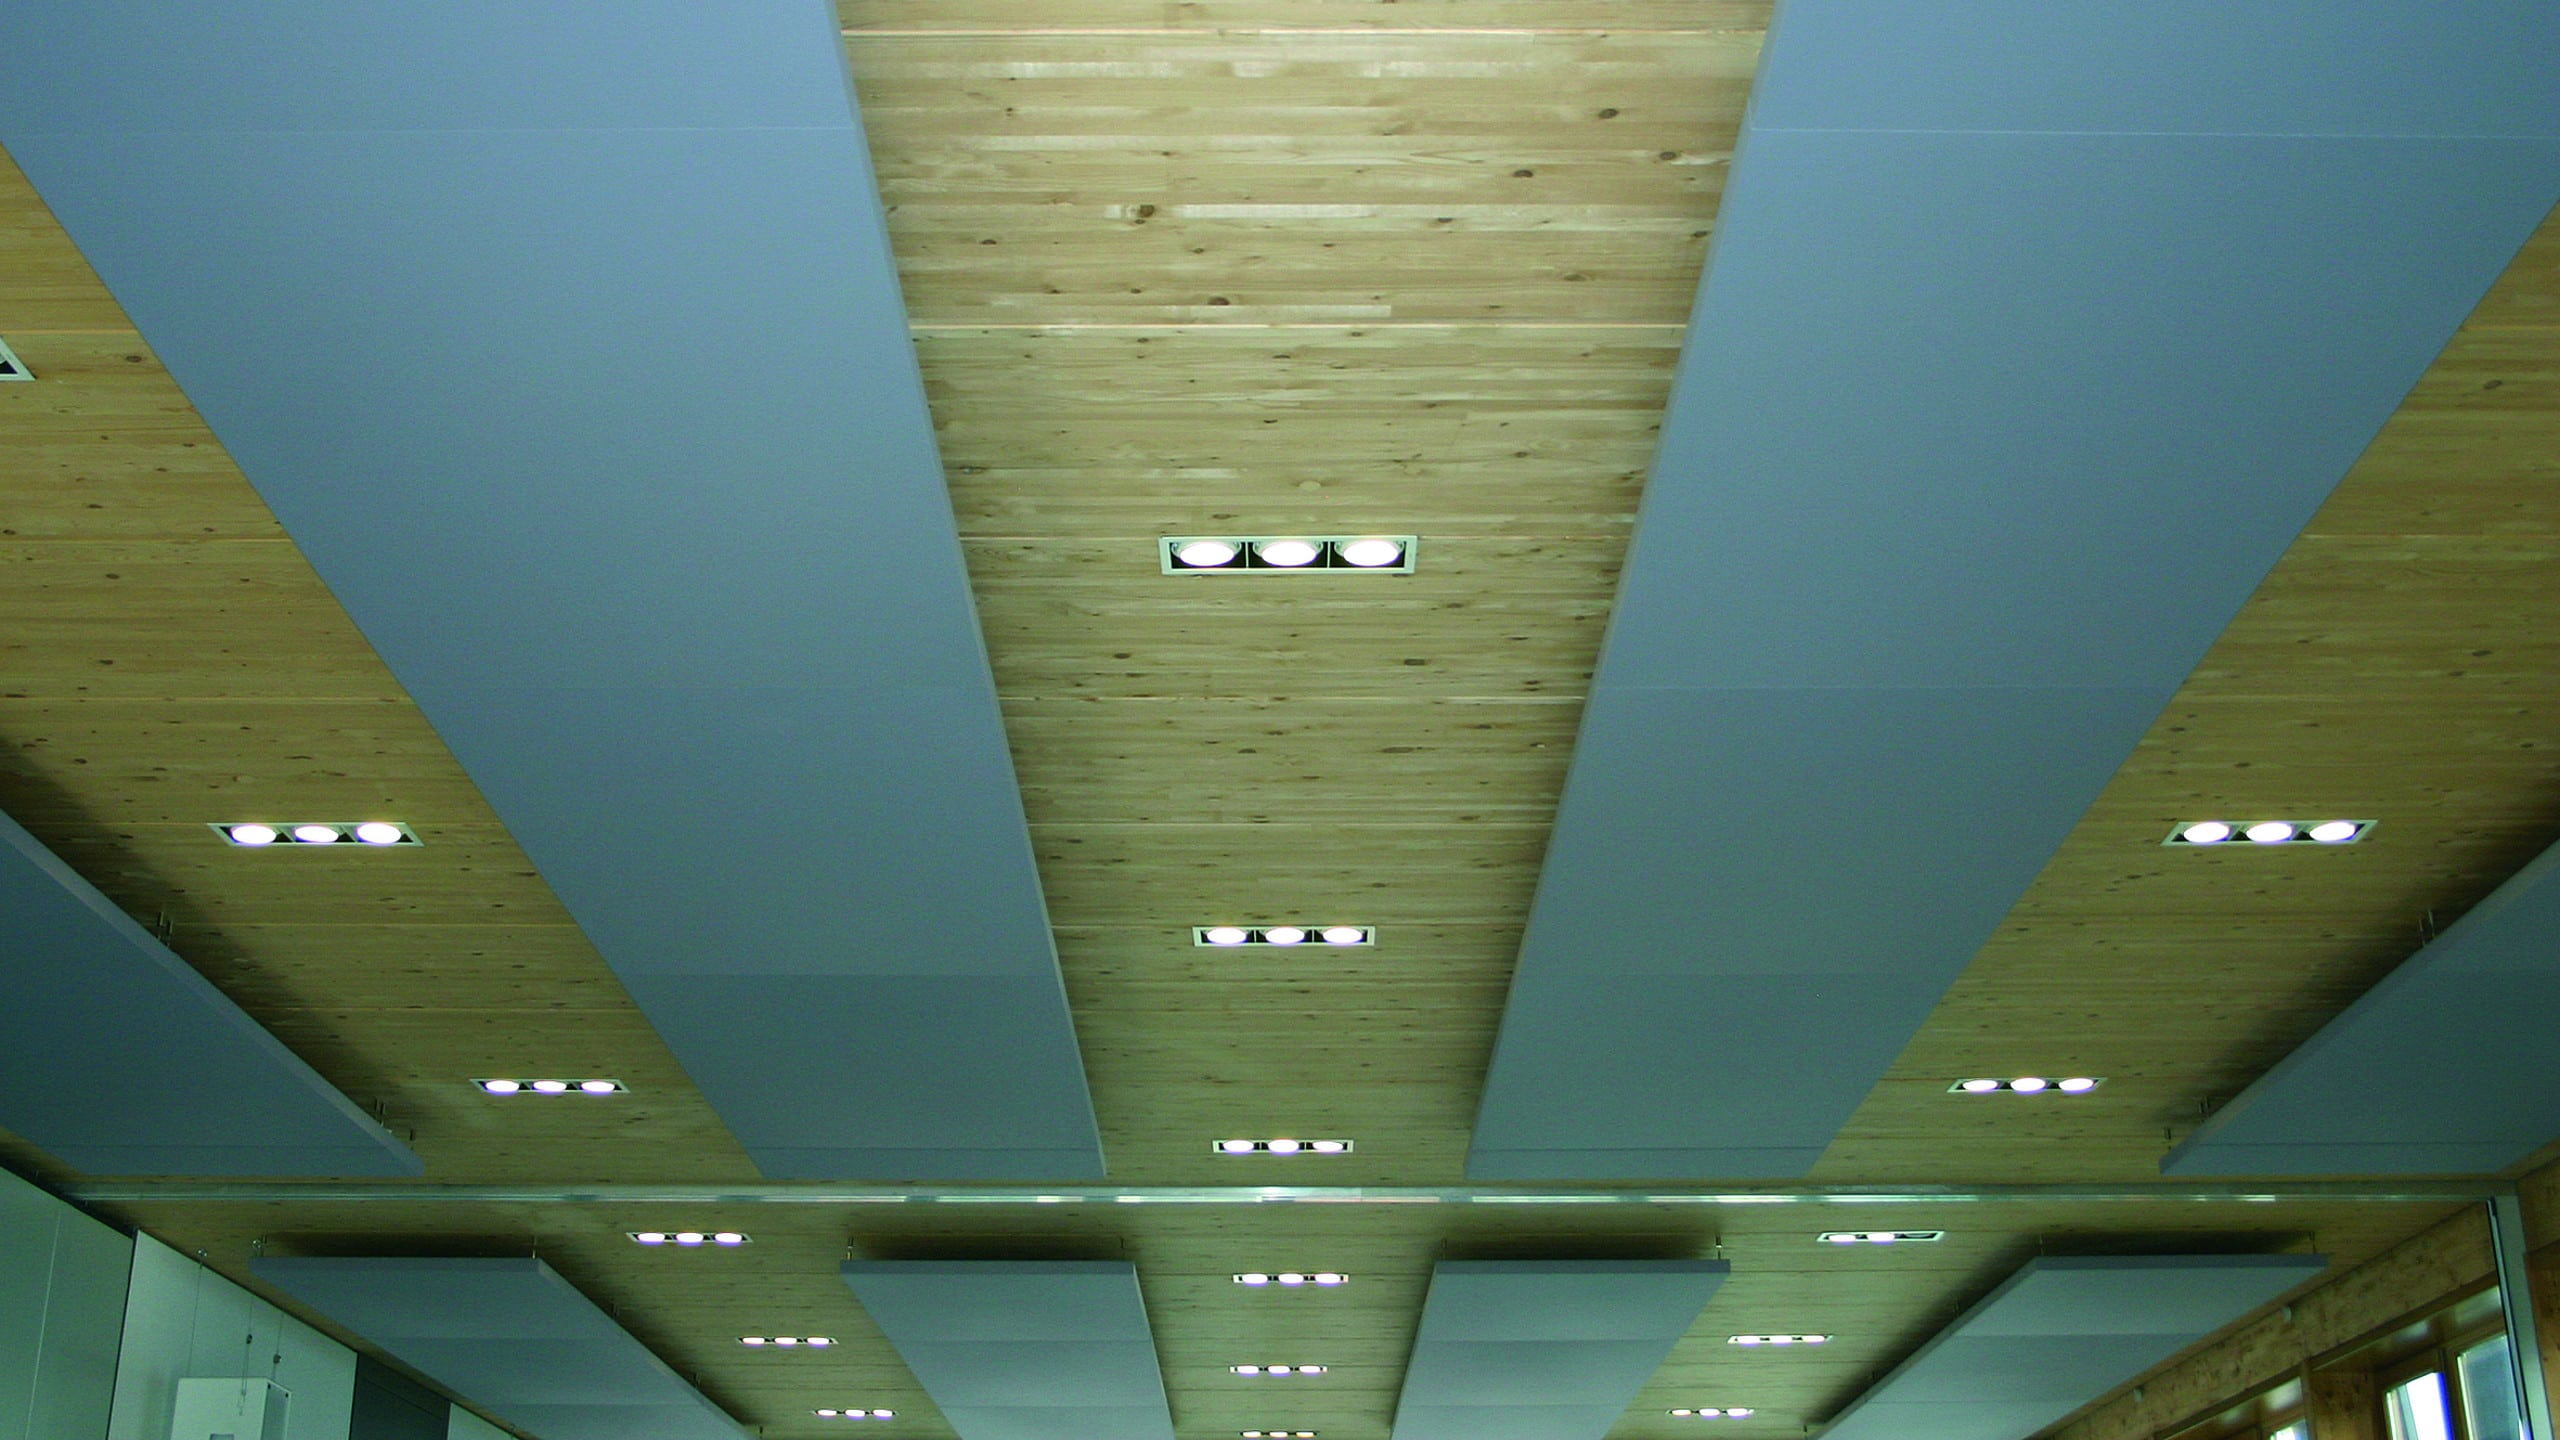 Ceiling modules - View 2